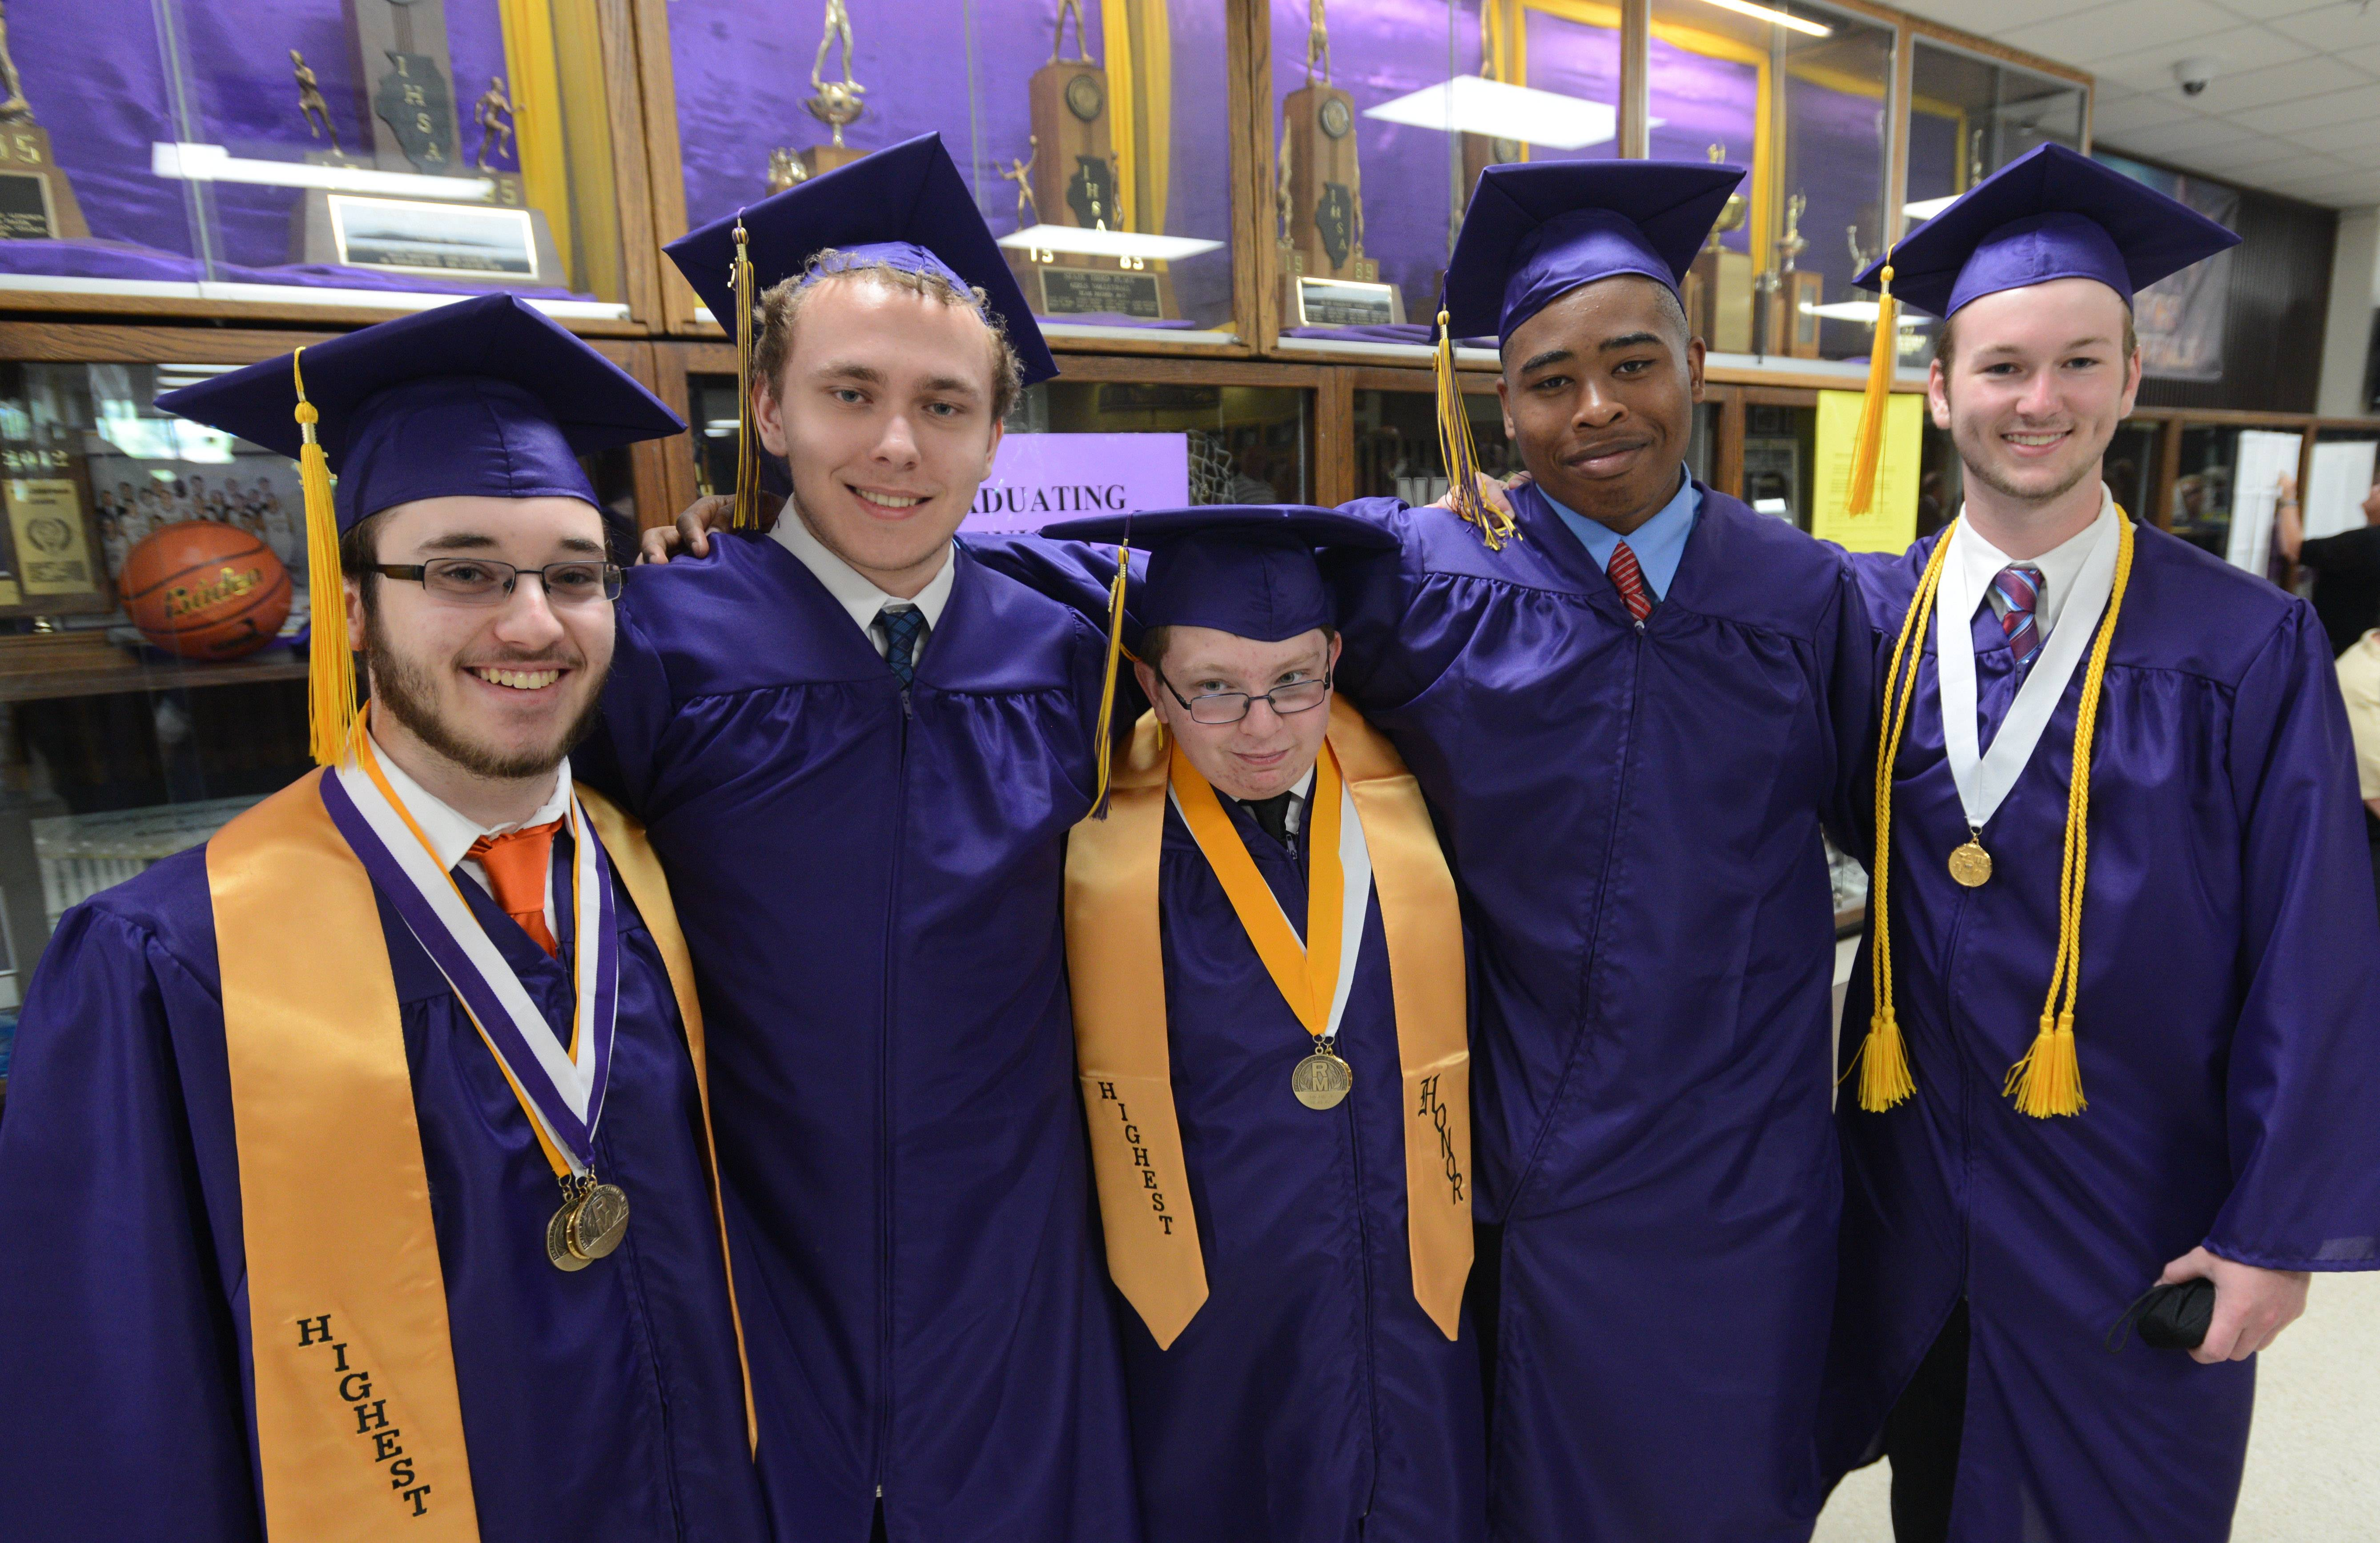 Photos from the Rolling Meadows High School graduation on Sunday, June 1, at the school.